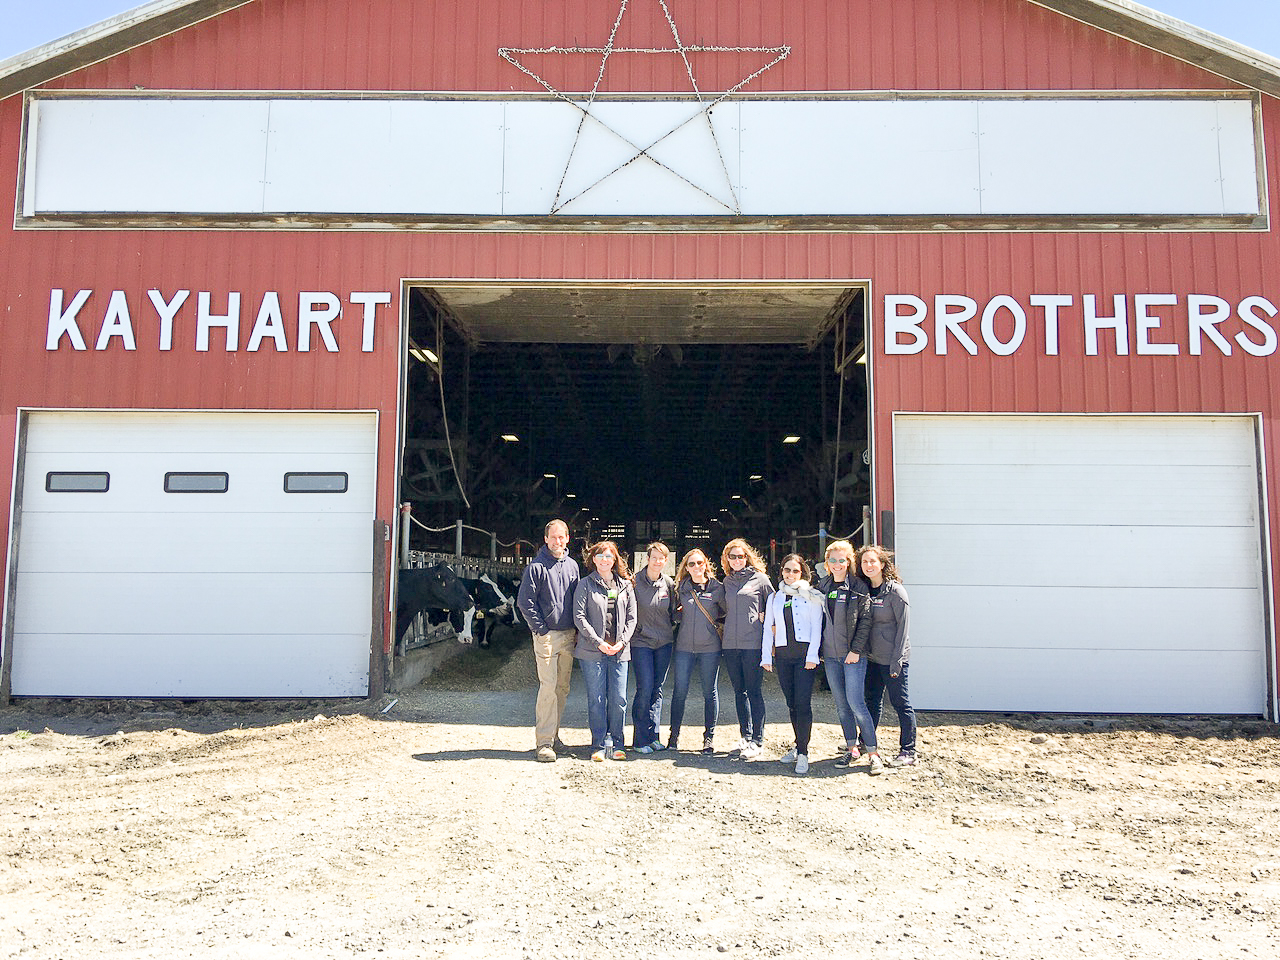 Kayhart brothers farm